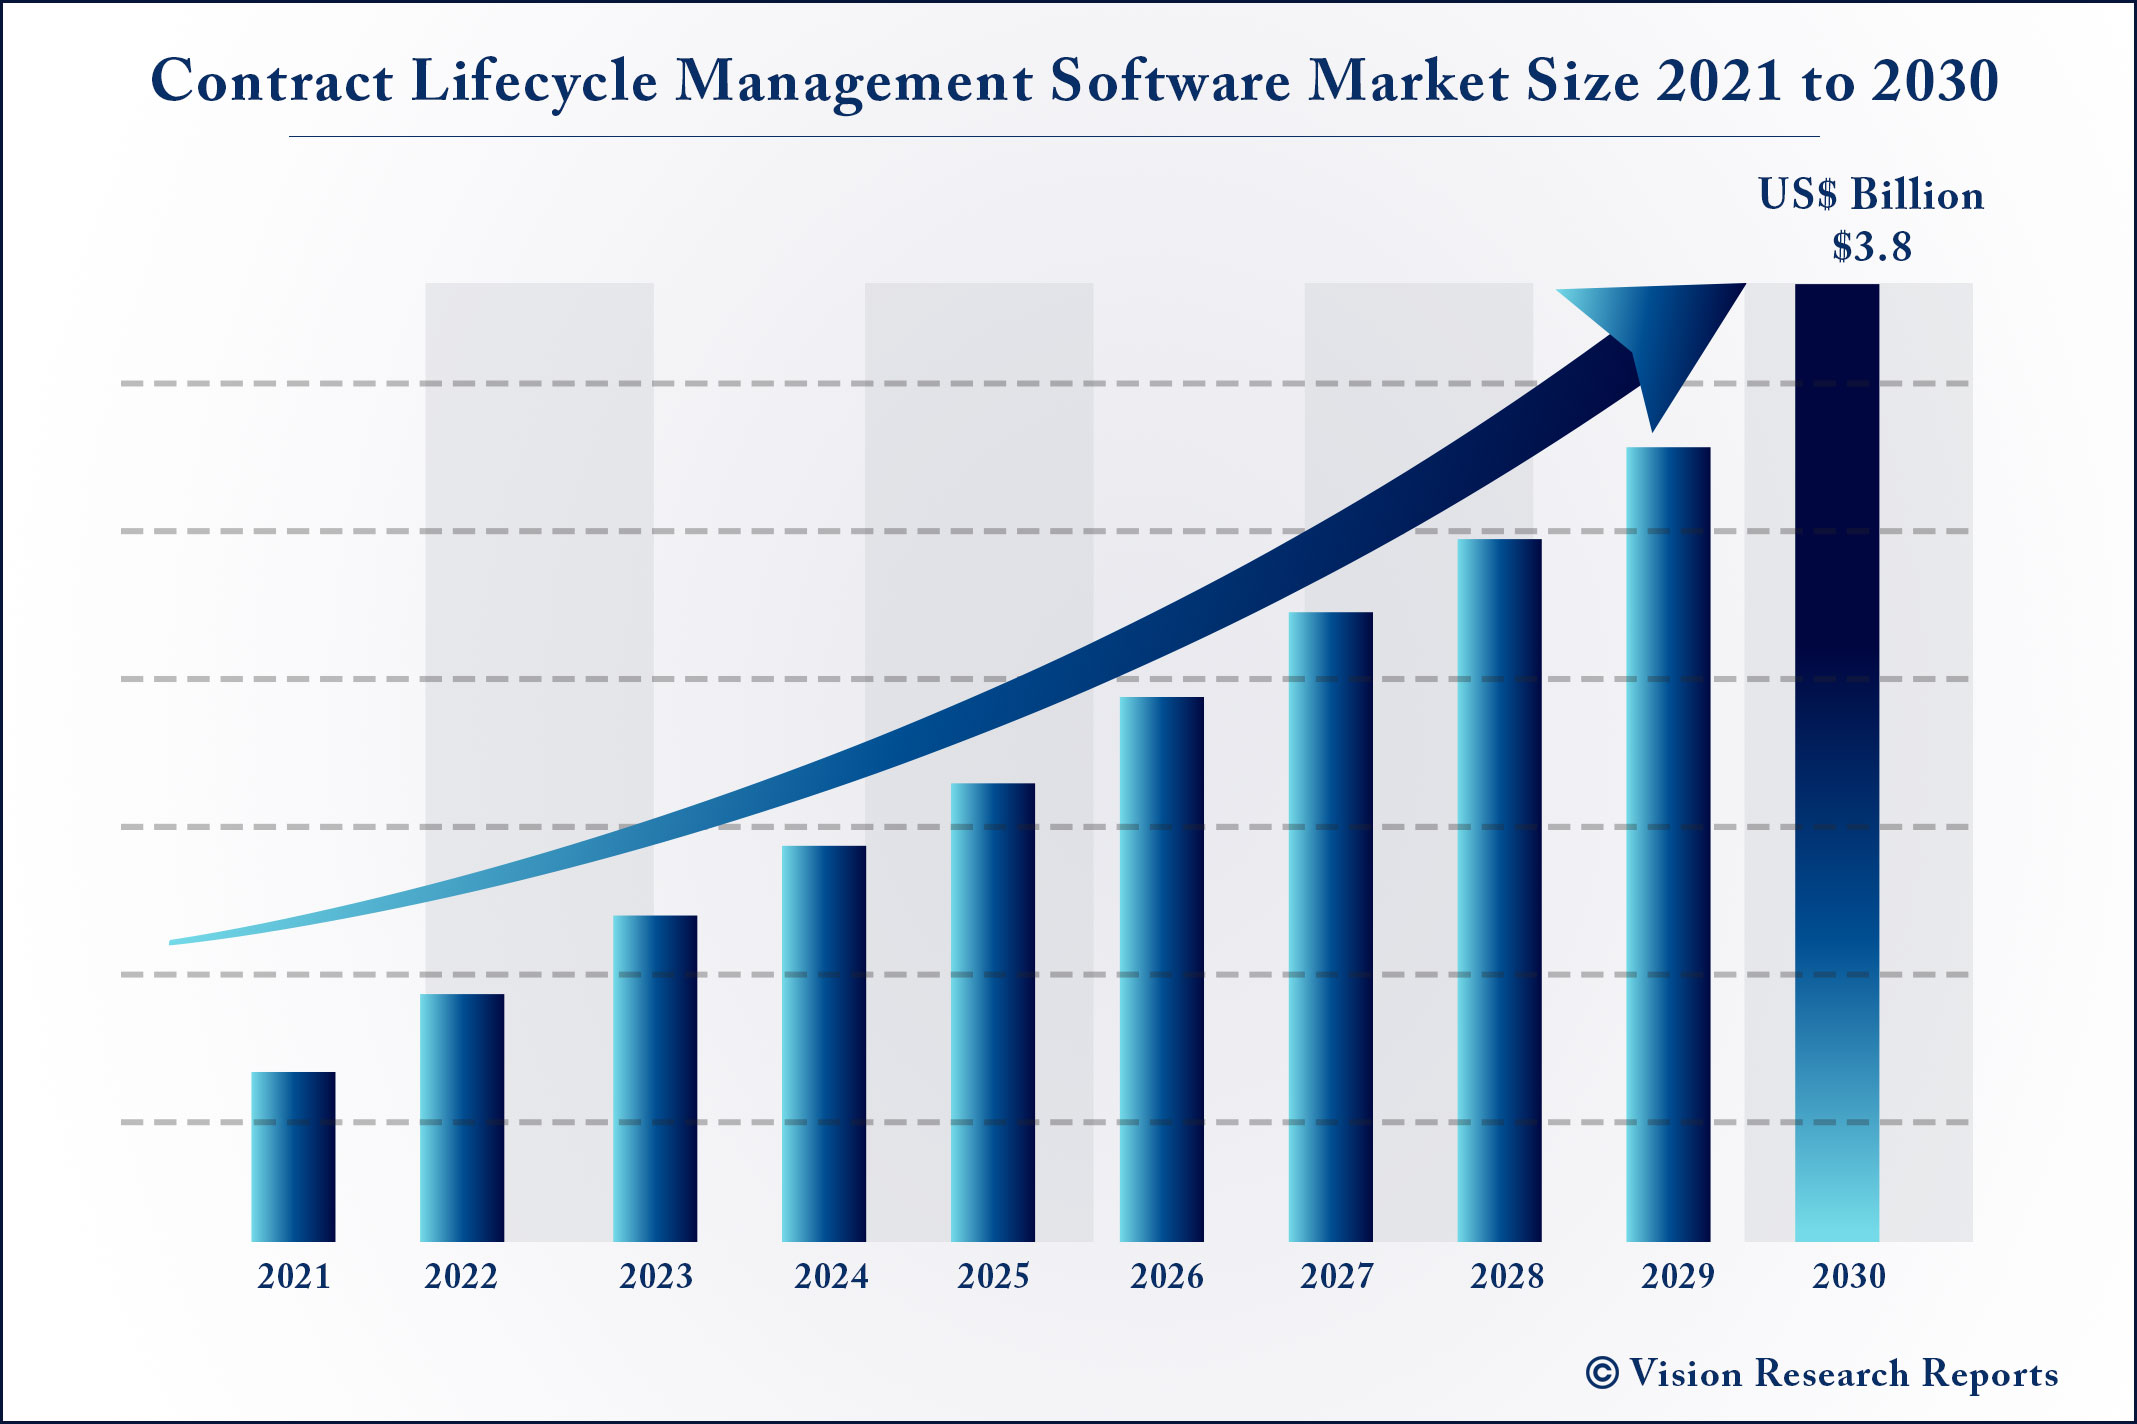 Contract Lifecycle Management Software Market Size 2021 to 2030